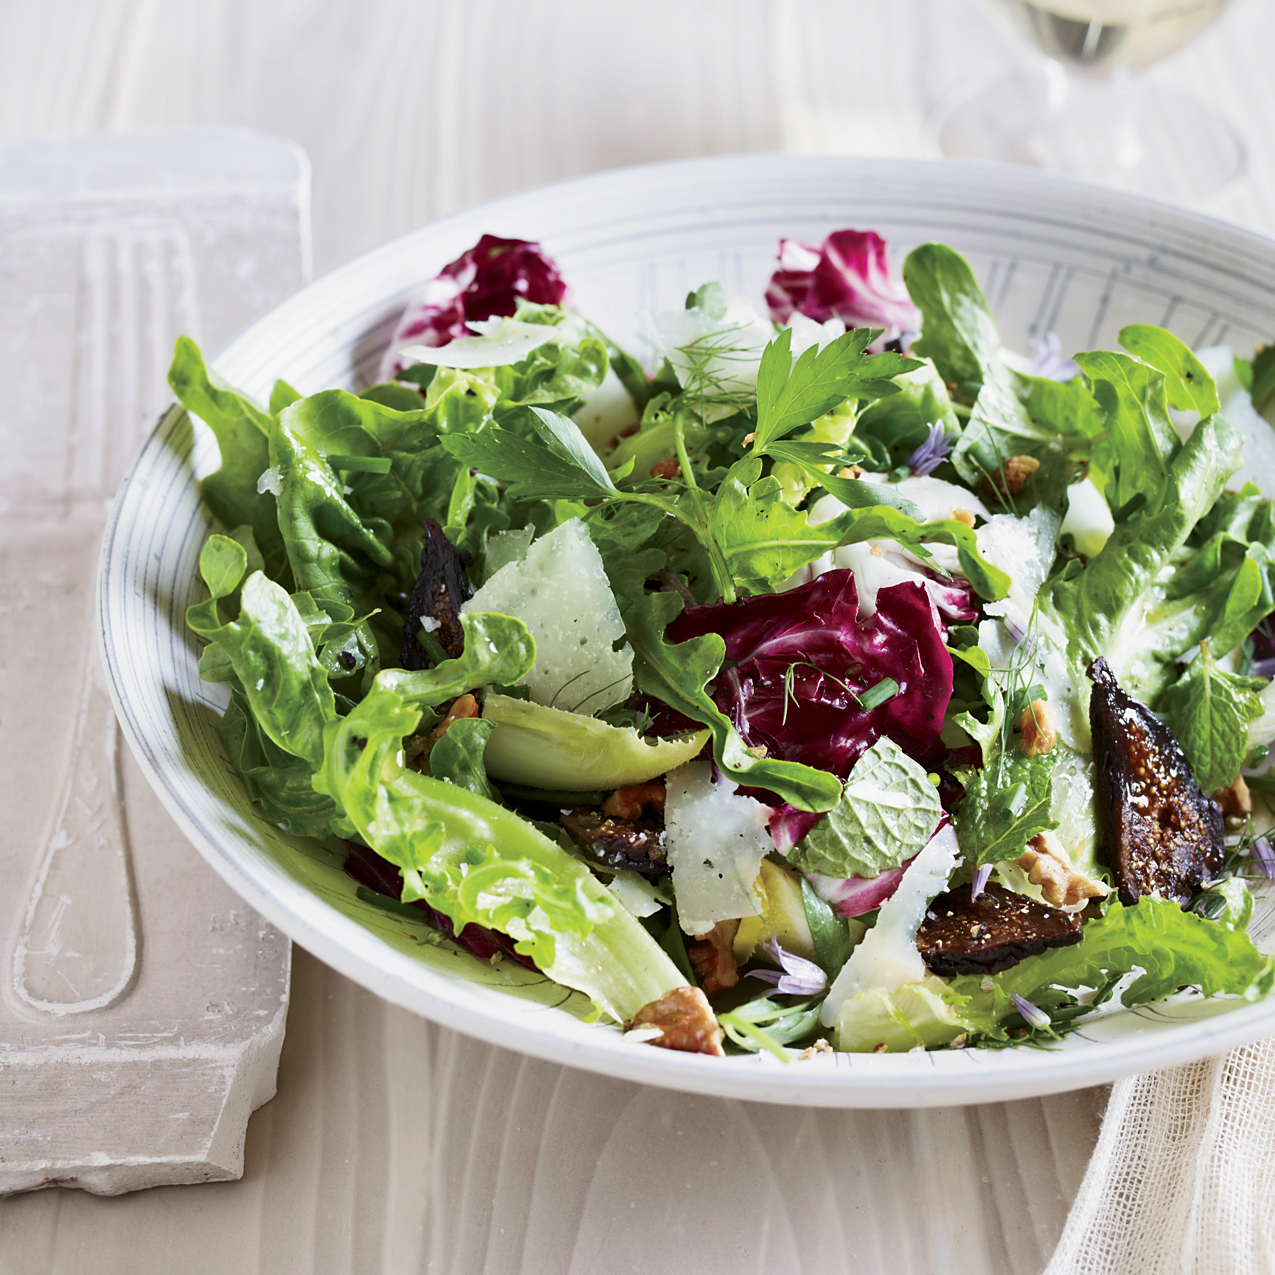 Day 16: Mixed-Greens-and-Herb Salad with Figs and Walnuts